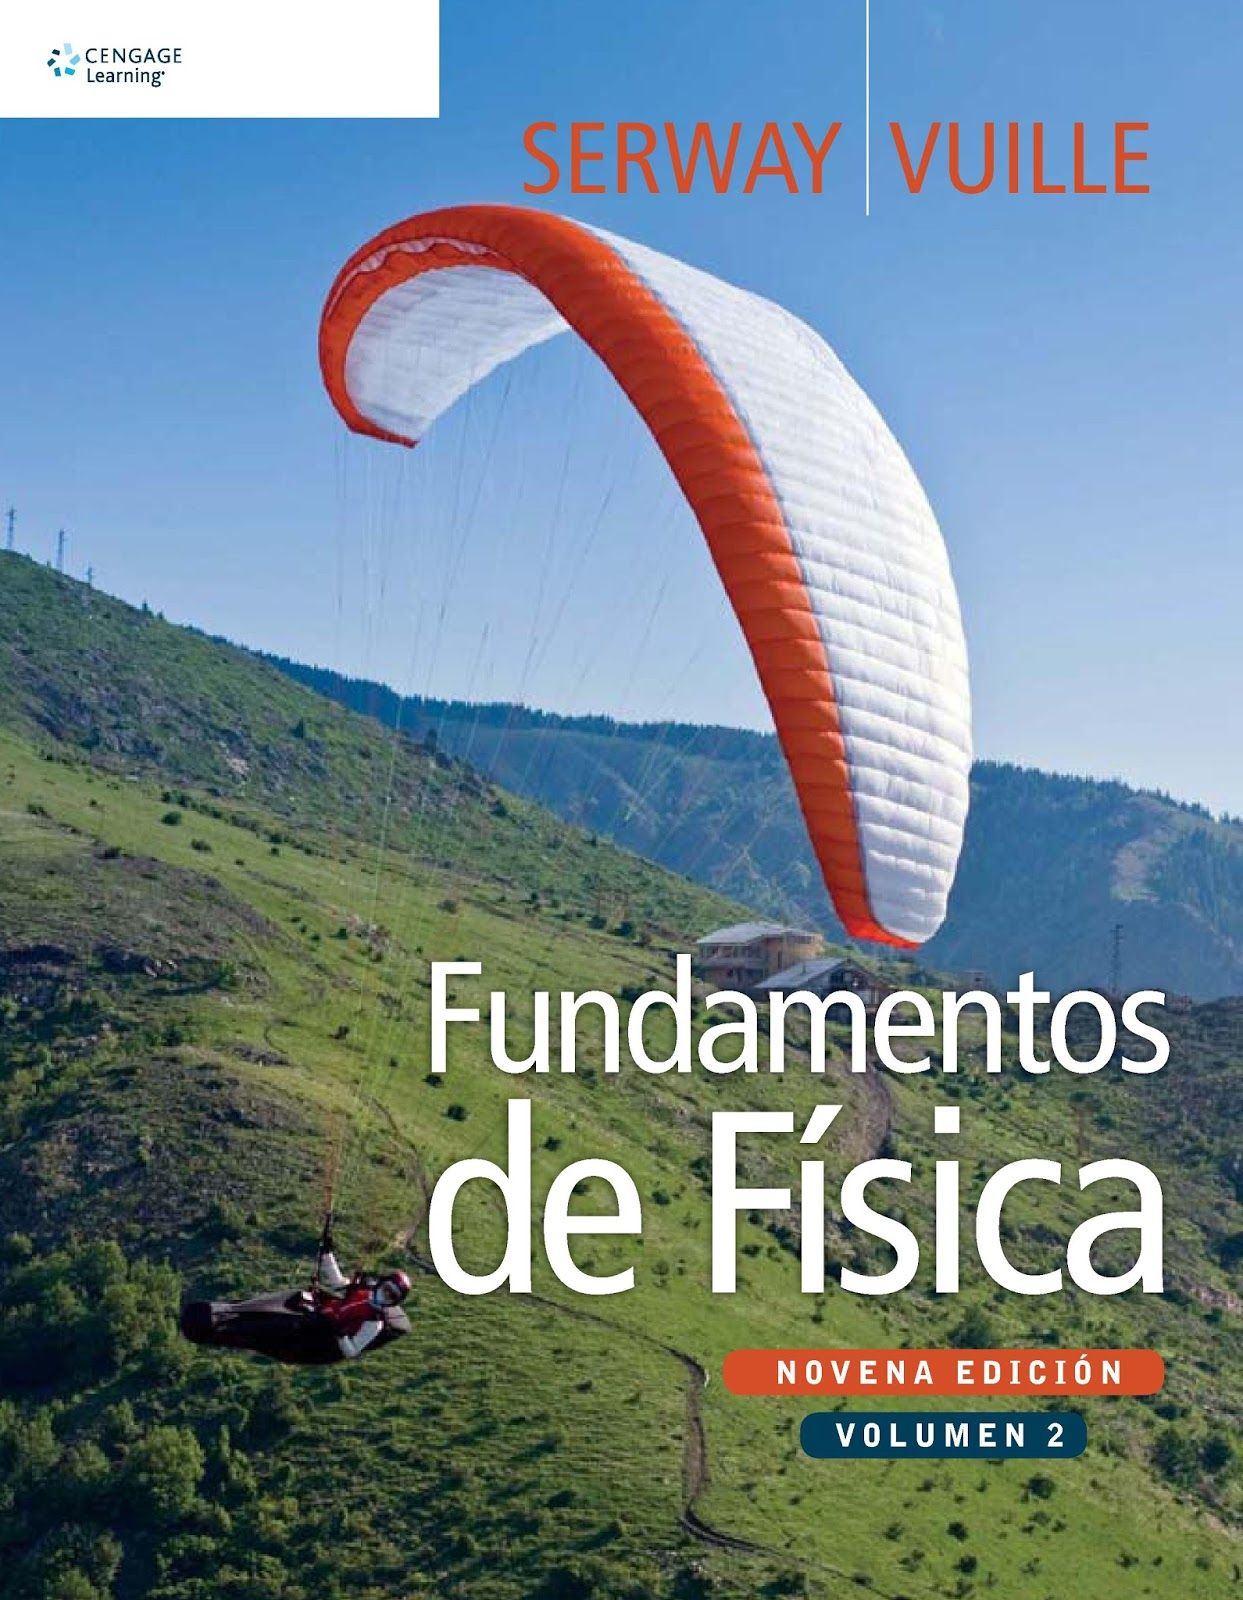 Descargar Libros Universitarios Gratis Fundamento De Fisica 9edicion Vol 2 Serway And Vuille